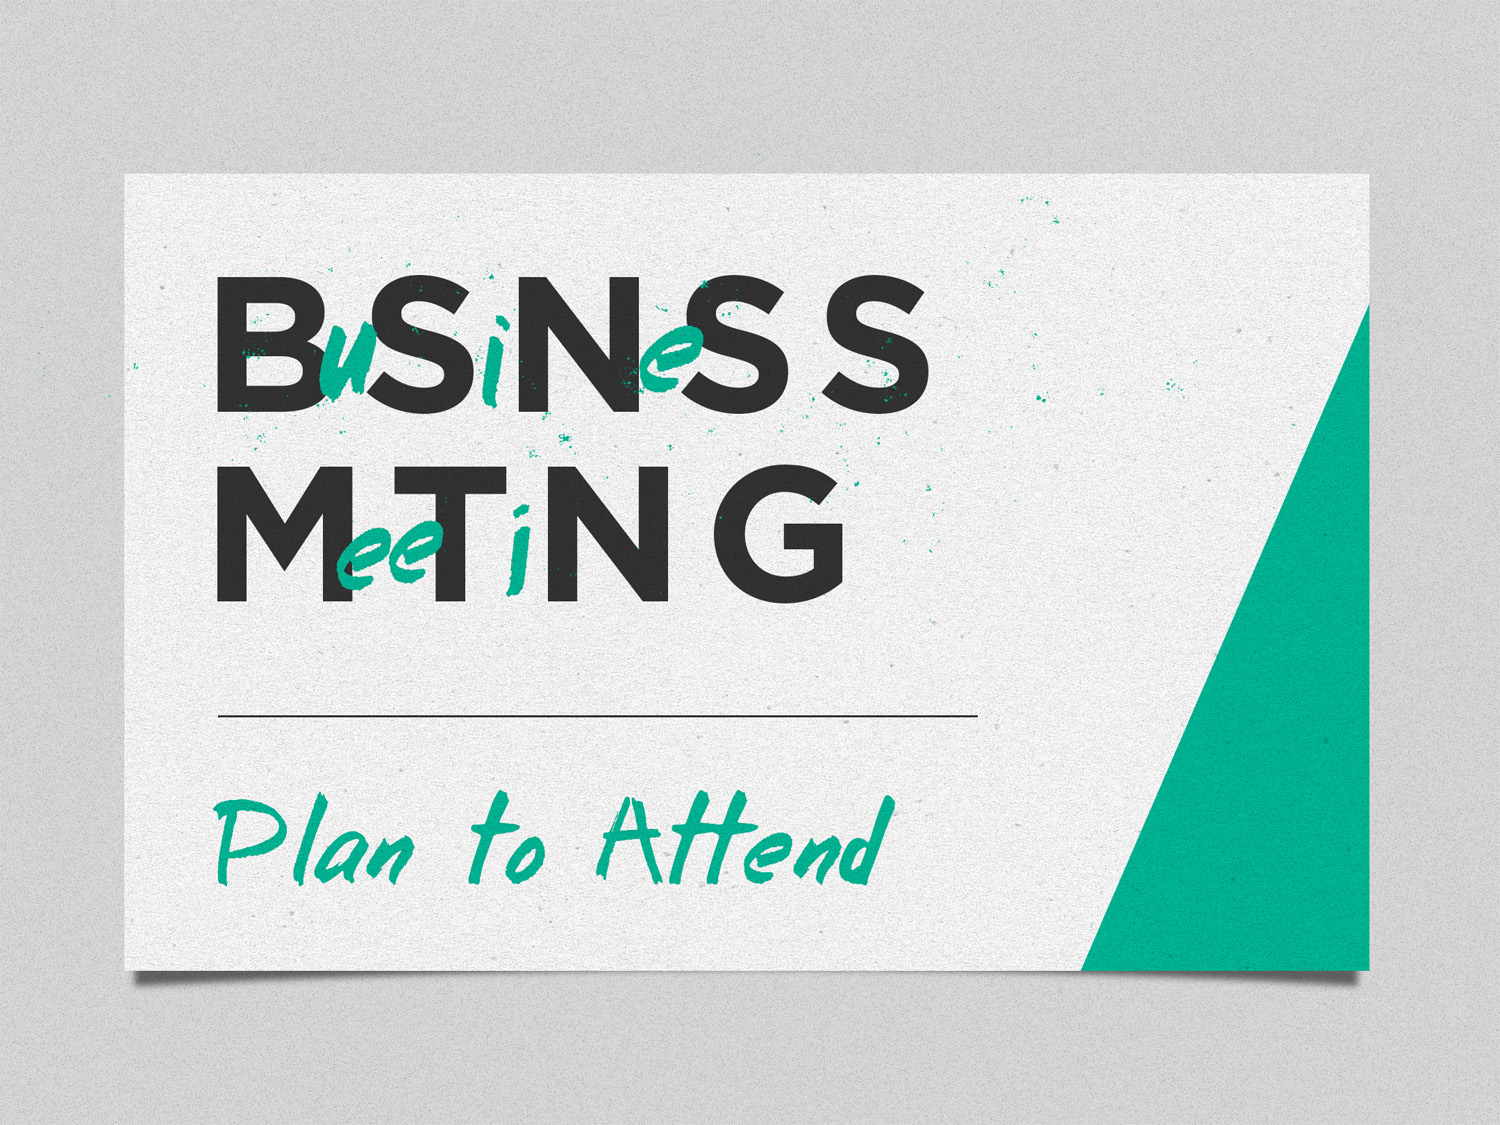 business_meeting-title-1-still-4x3 image